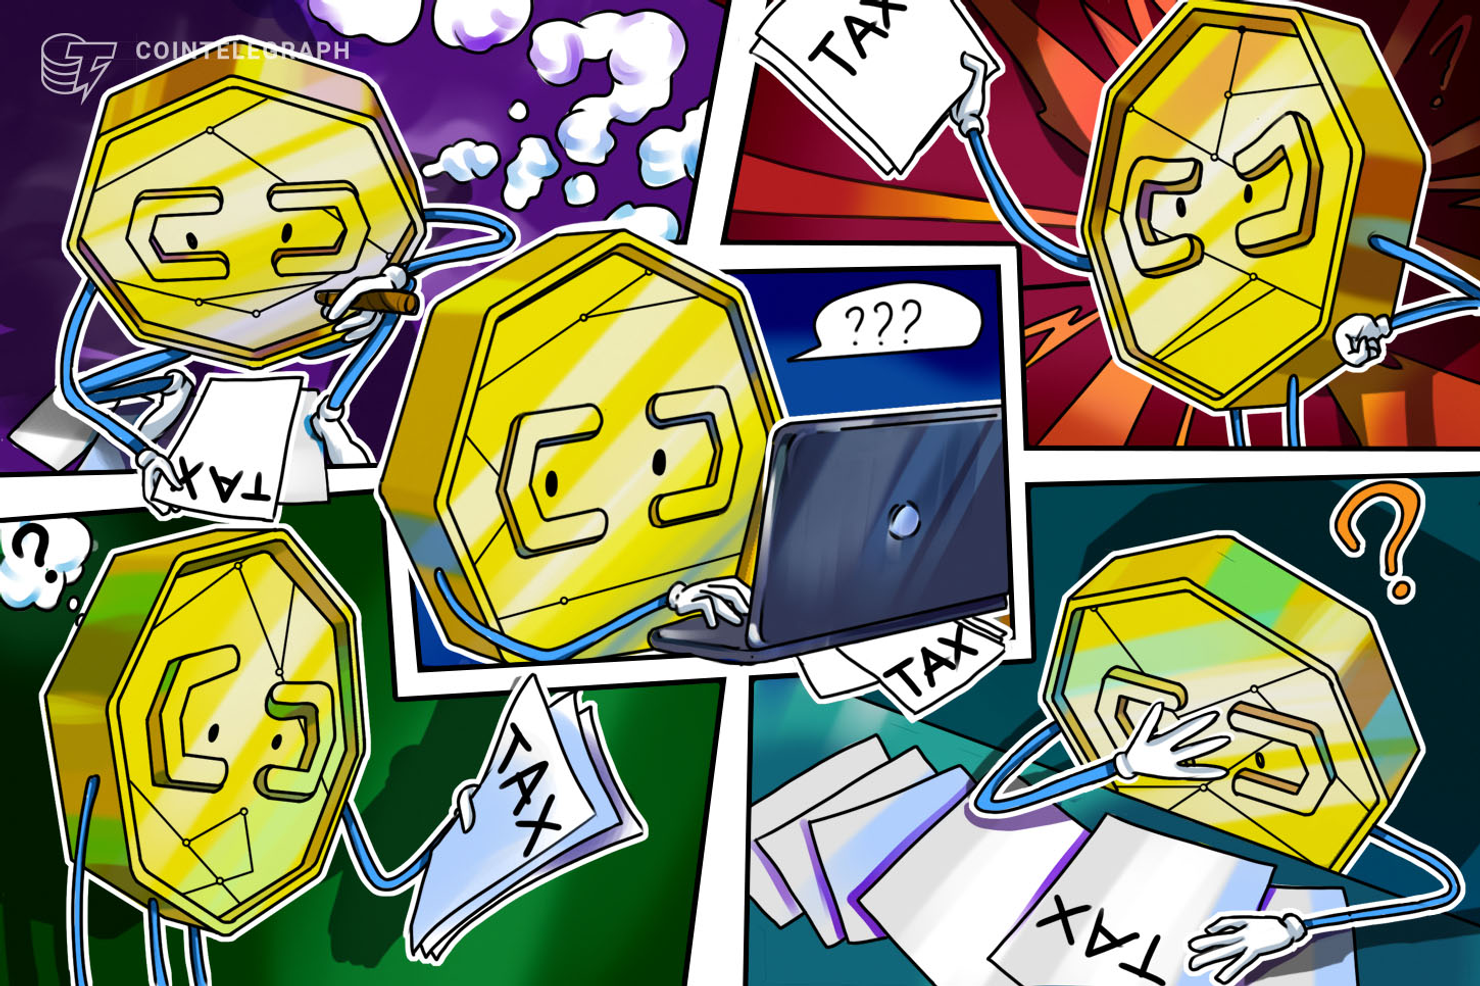 Israeli BTC Investors Can't Pay Taxes as Banks Refuse Deposit